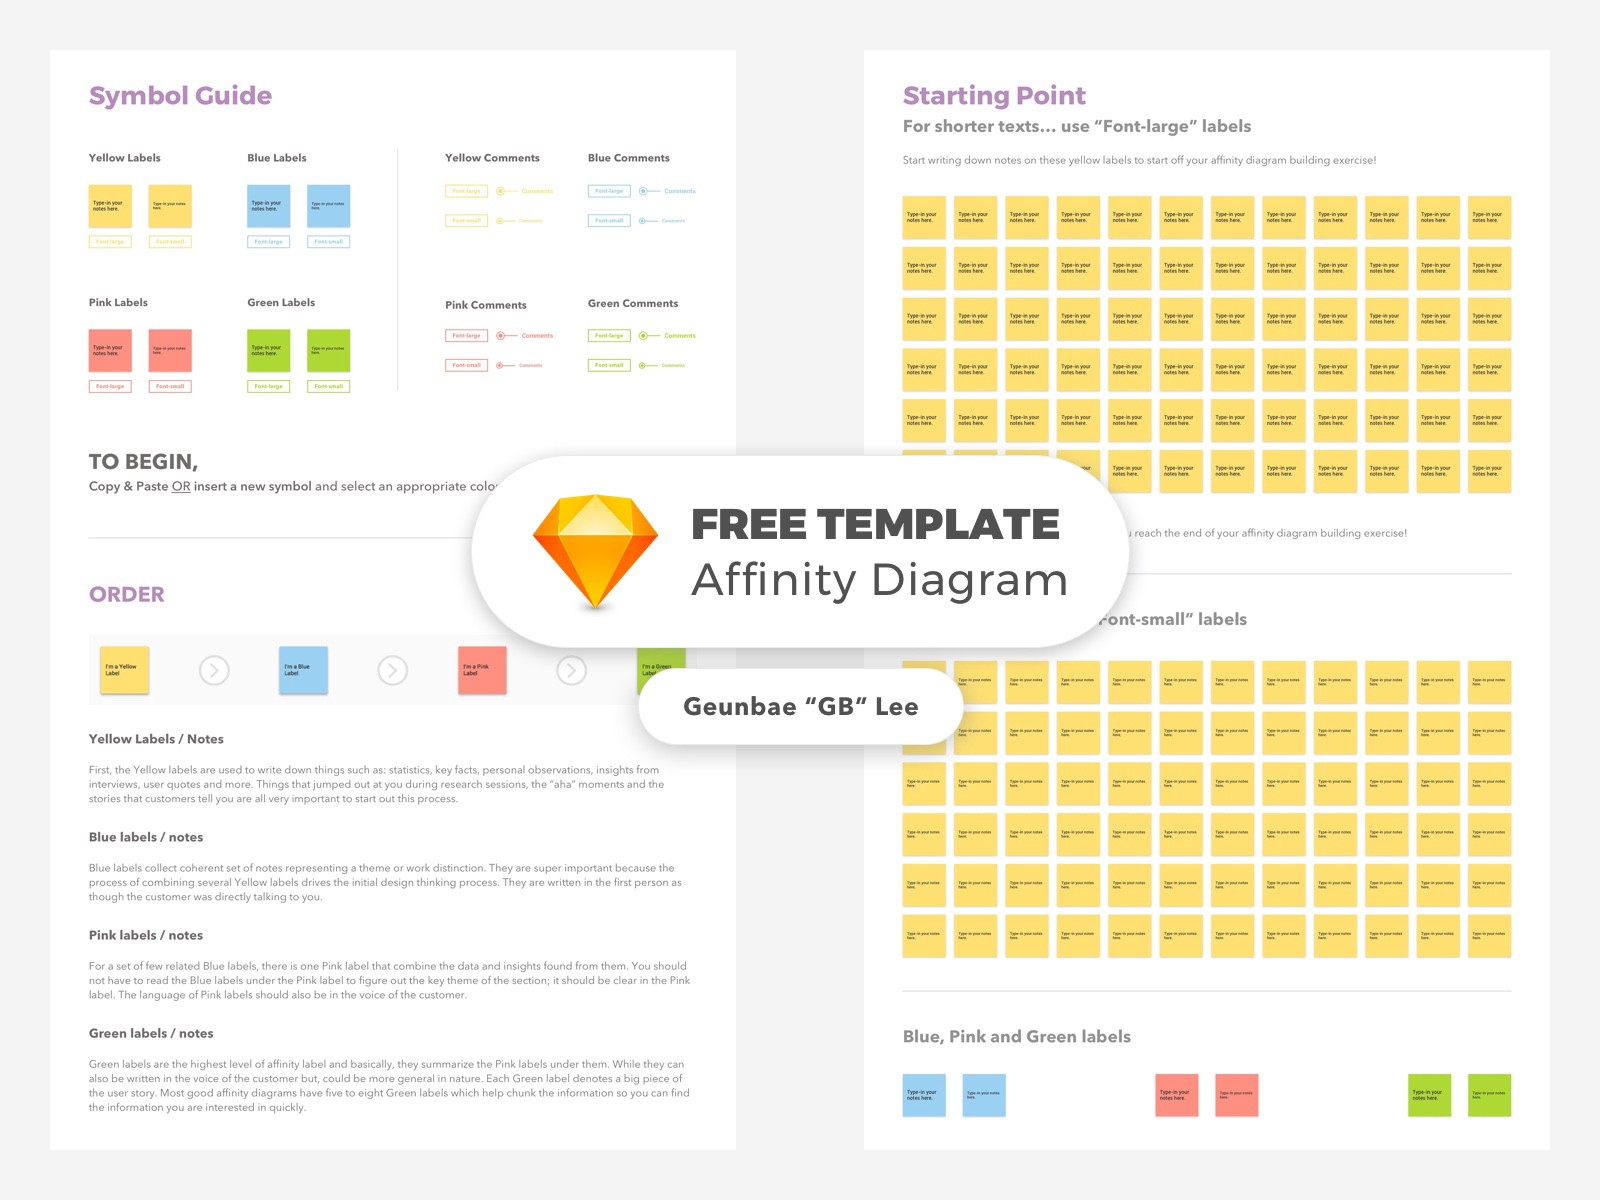 """Affinity Diagram free sketch template for building a meaningful """"affinity"""